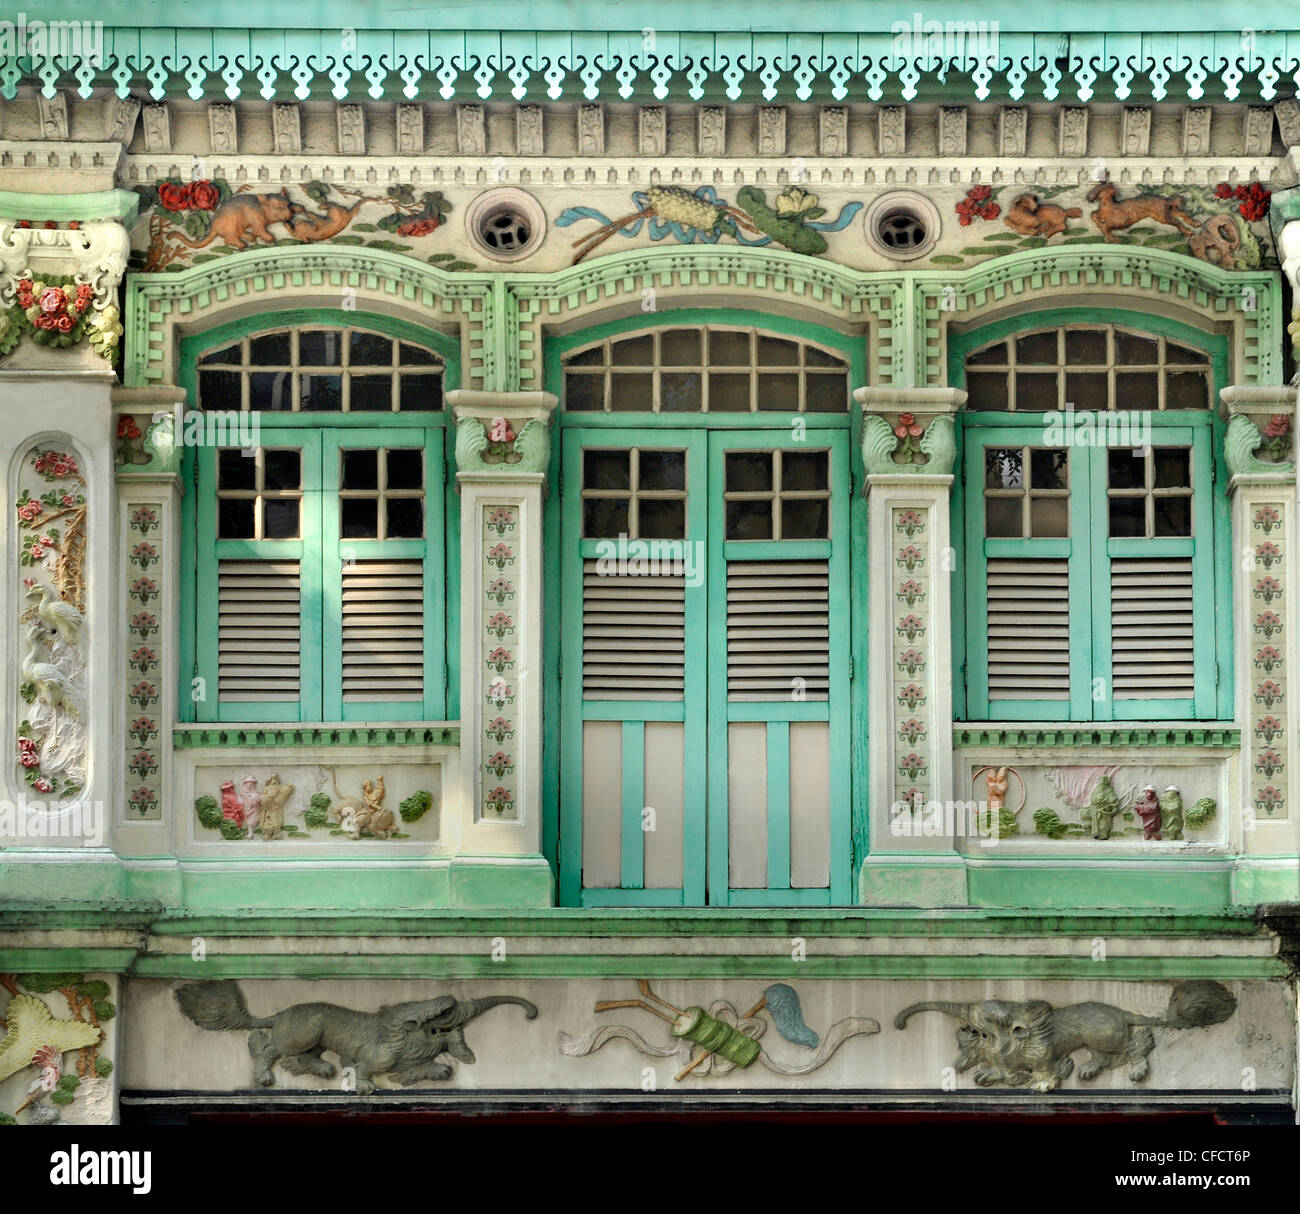 Facades of shophouses in Kichener Road, Singapore, Southeast Asia, Asia - Stock Image